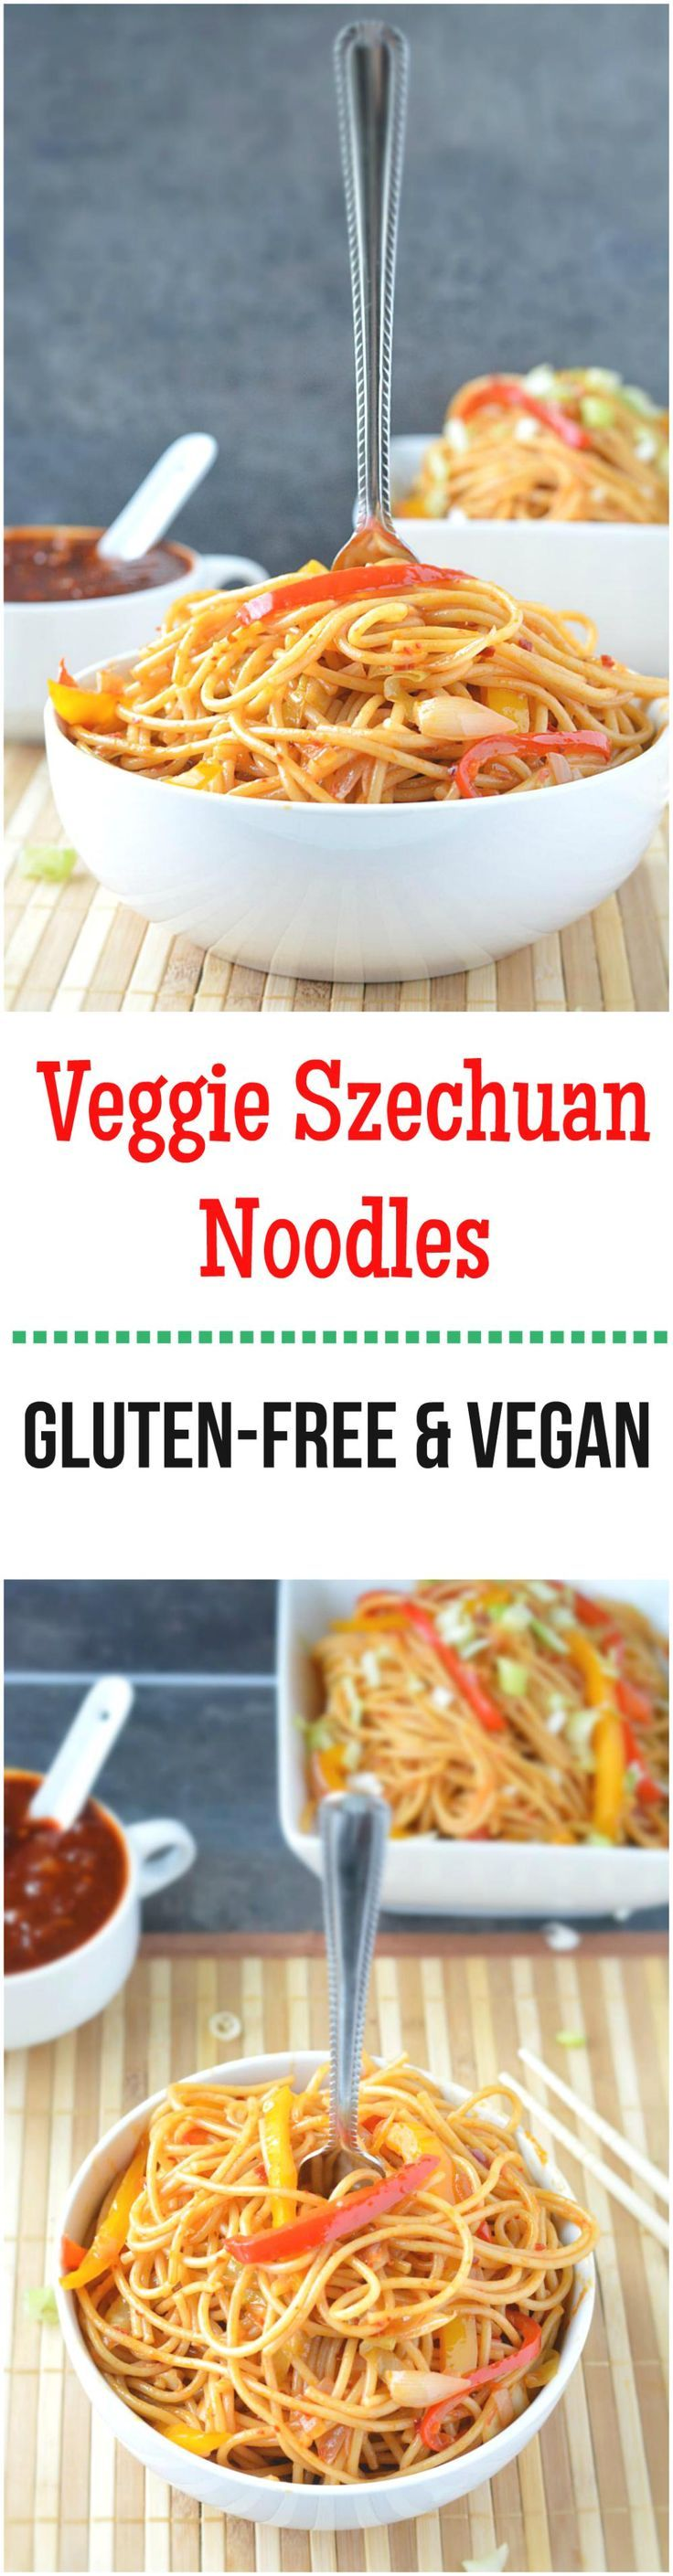 Thin noodles combined with veggies are tossed in hot and fiery szechuan sauce making it a delicious and flavorful vegan meal!